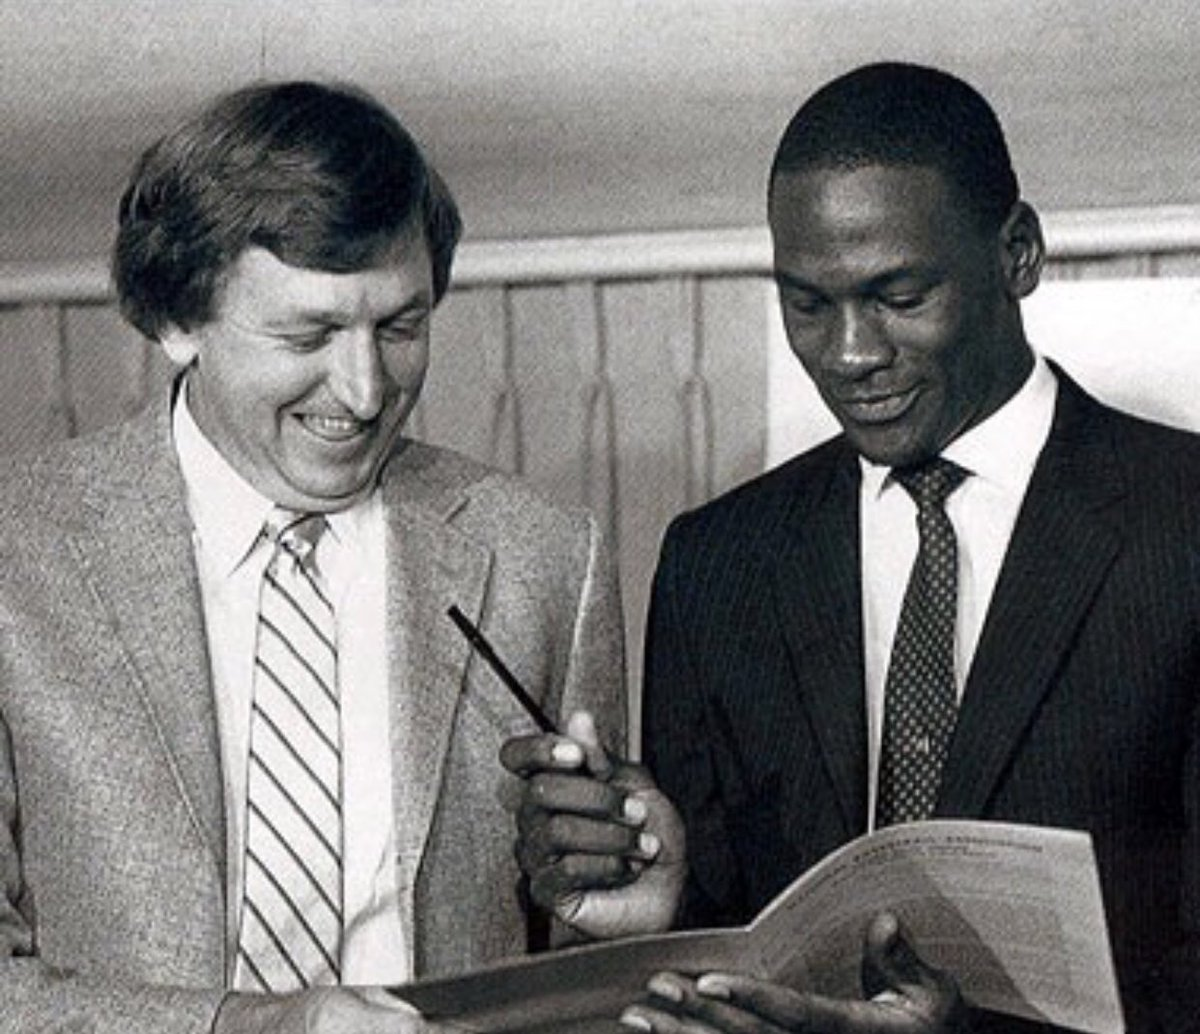 9f1306ebd78 Thorn, a former GM and coach of the Bulls, was instrumental in selecting Michael  Jordan with the 3rd pick in the 1984 NBA Draft.pic.twitter.com/QoIFaMJbsu